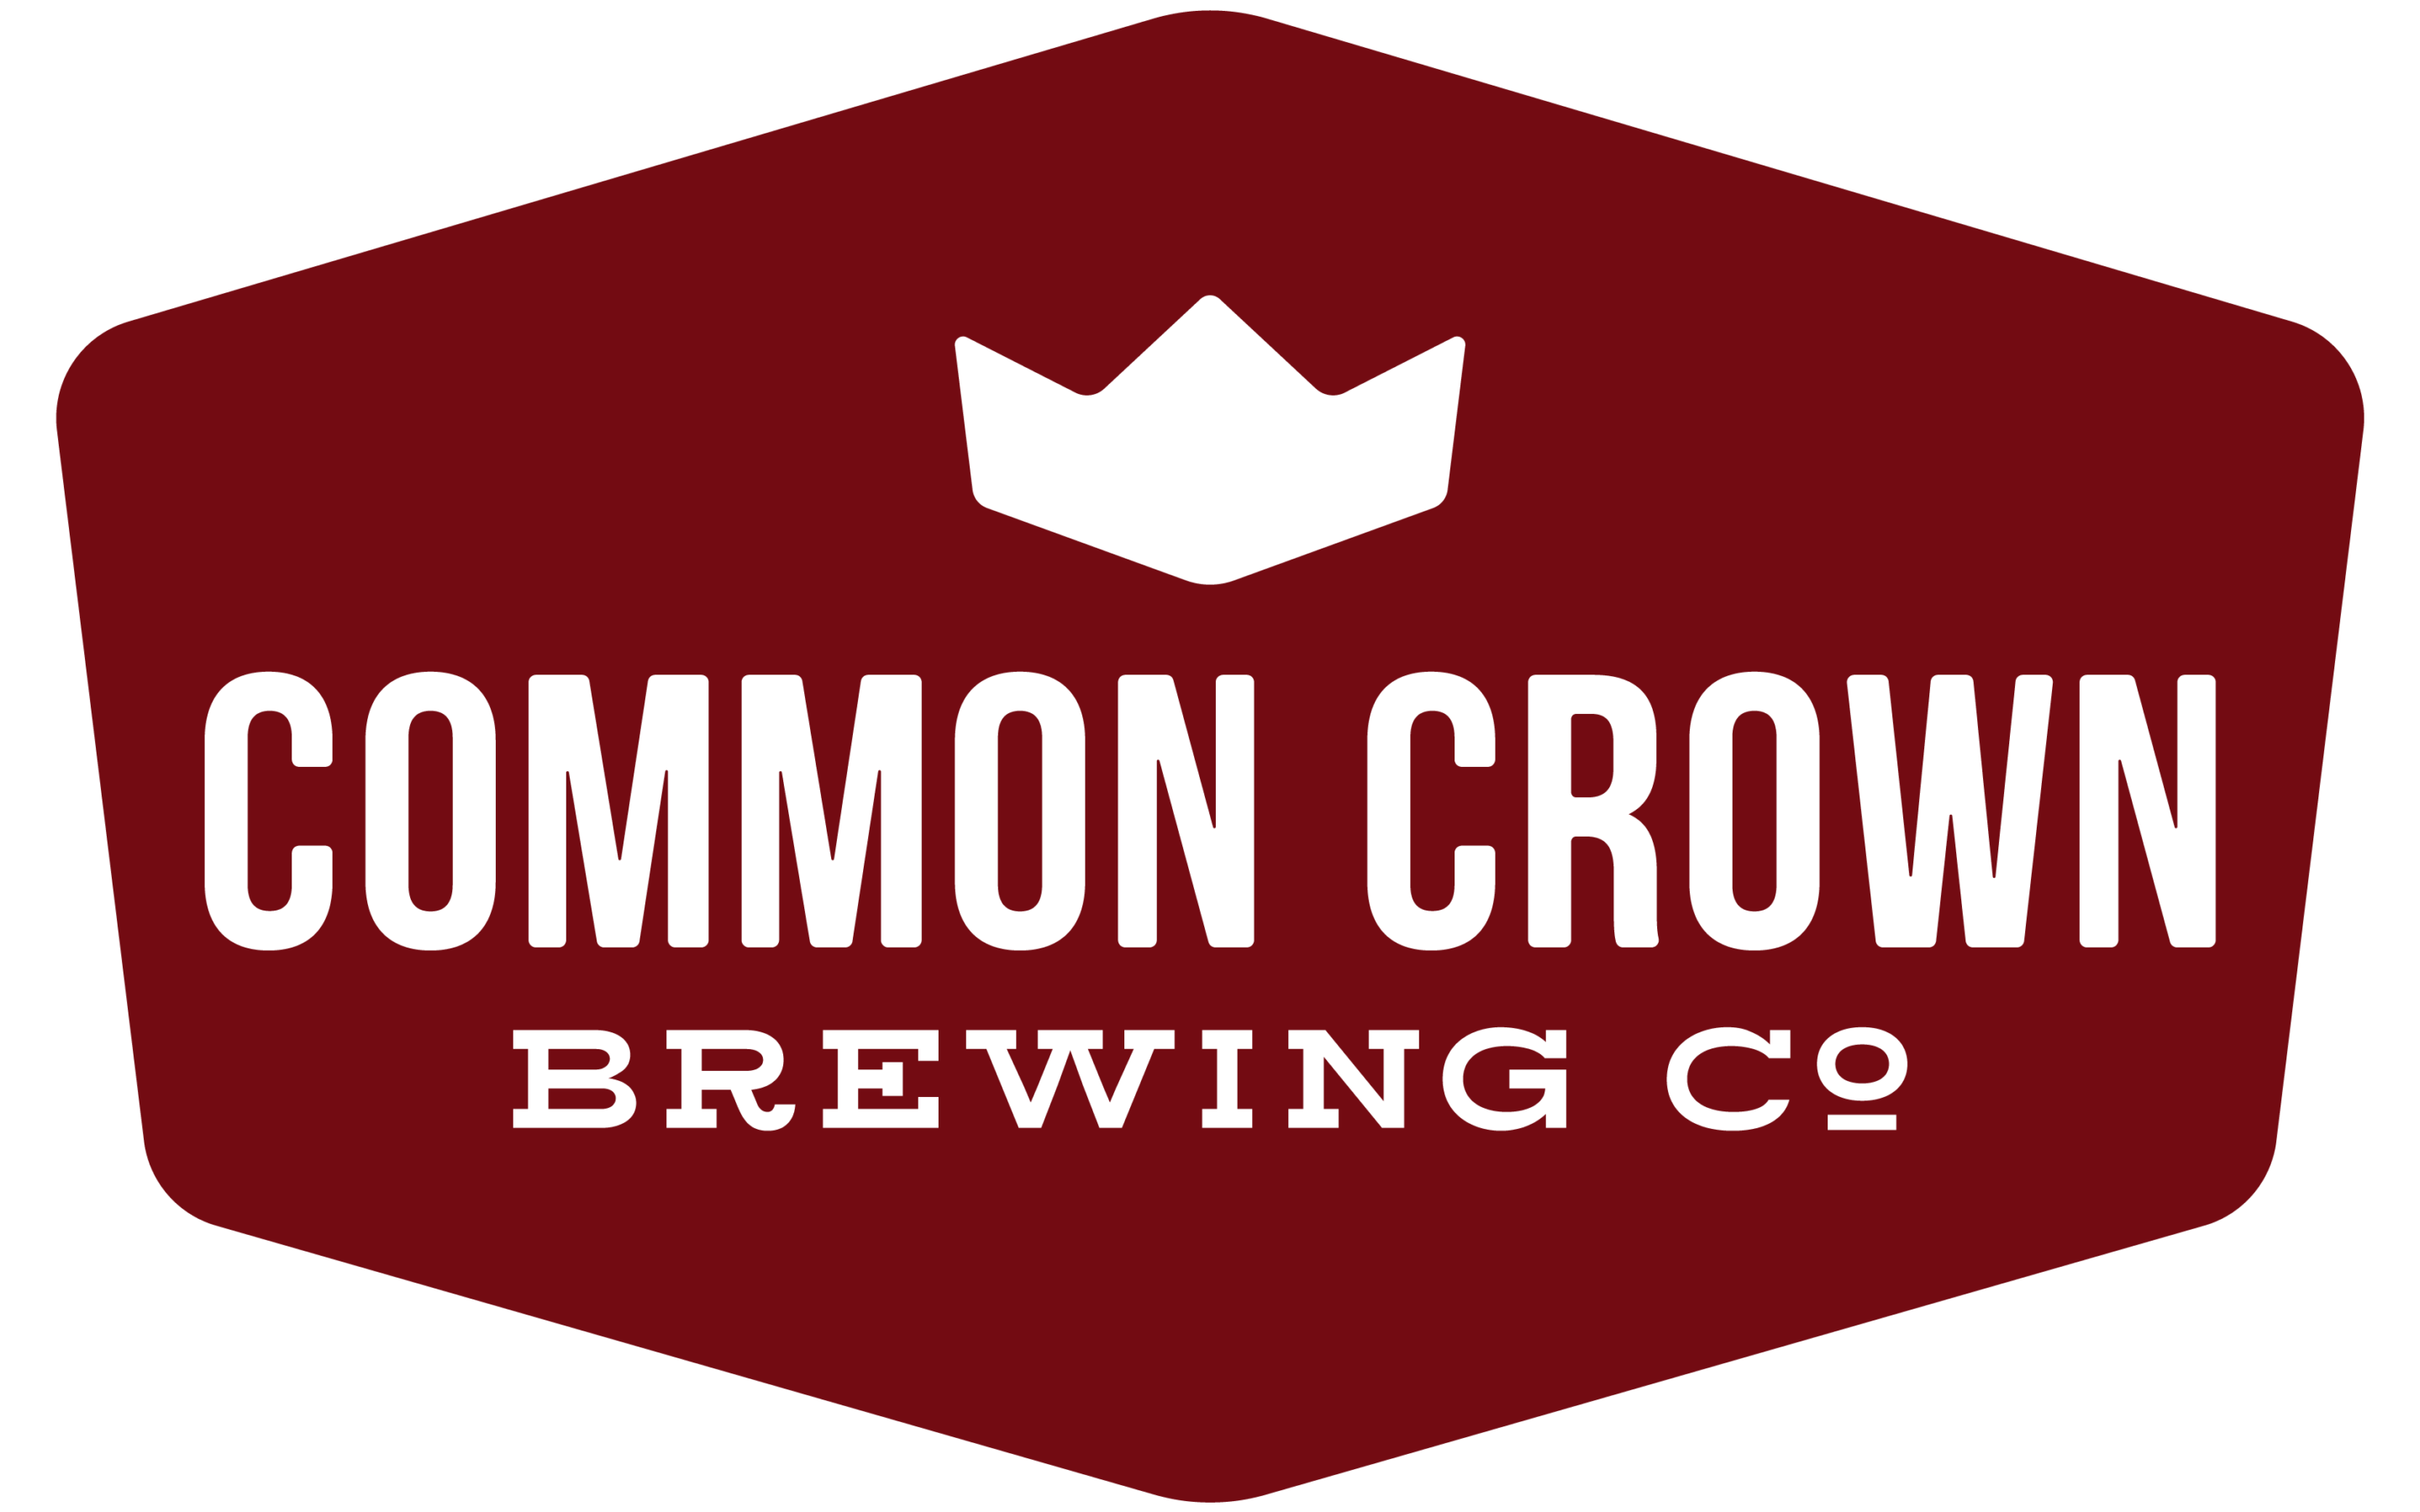 Common Crown Brewing Co